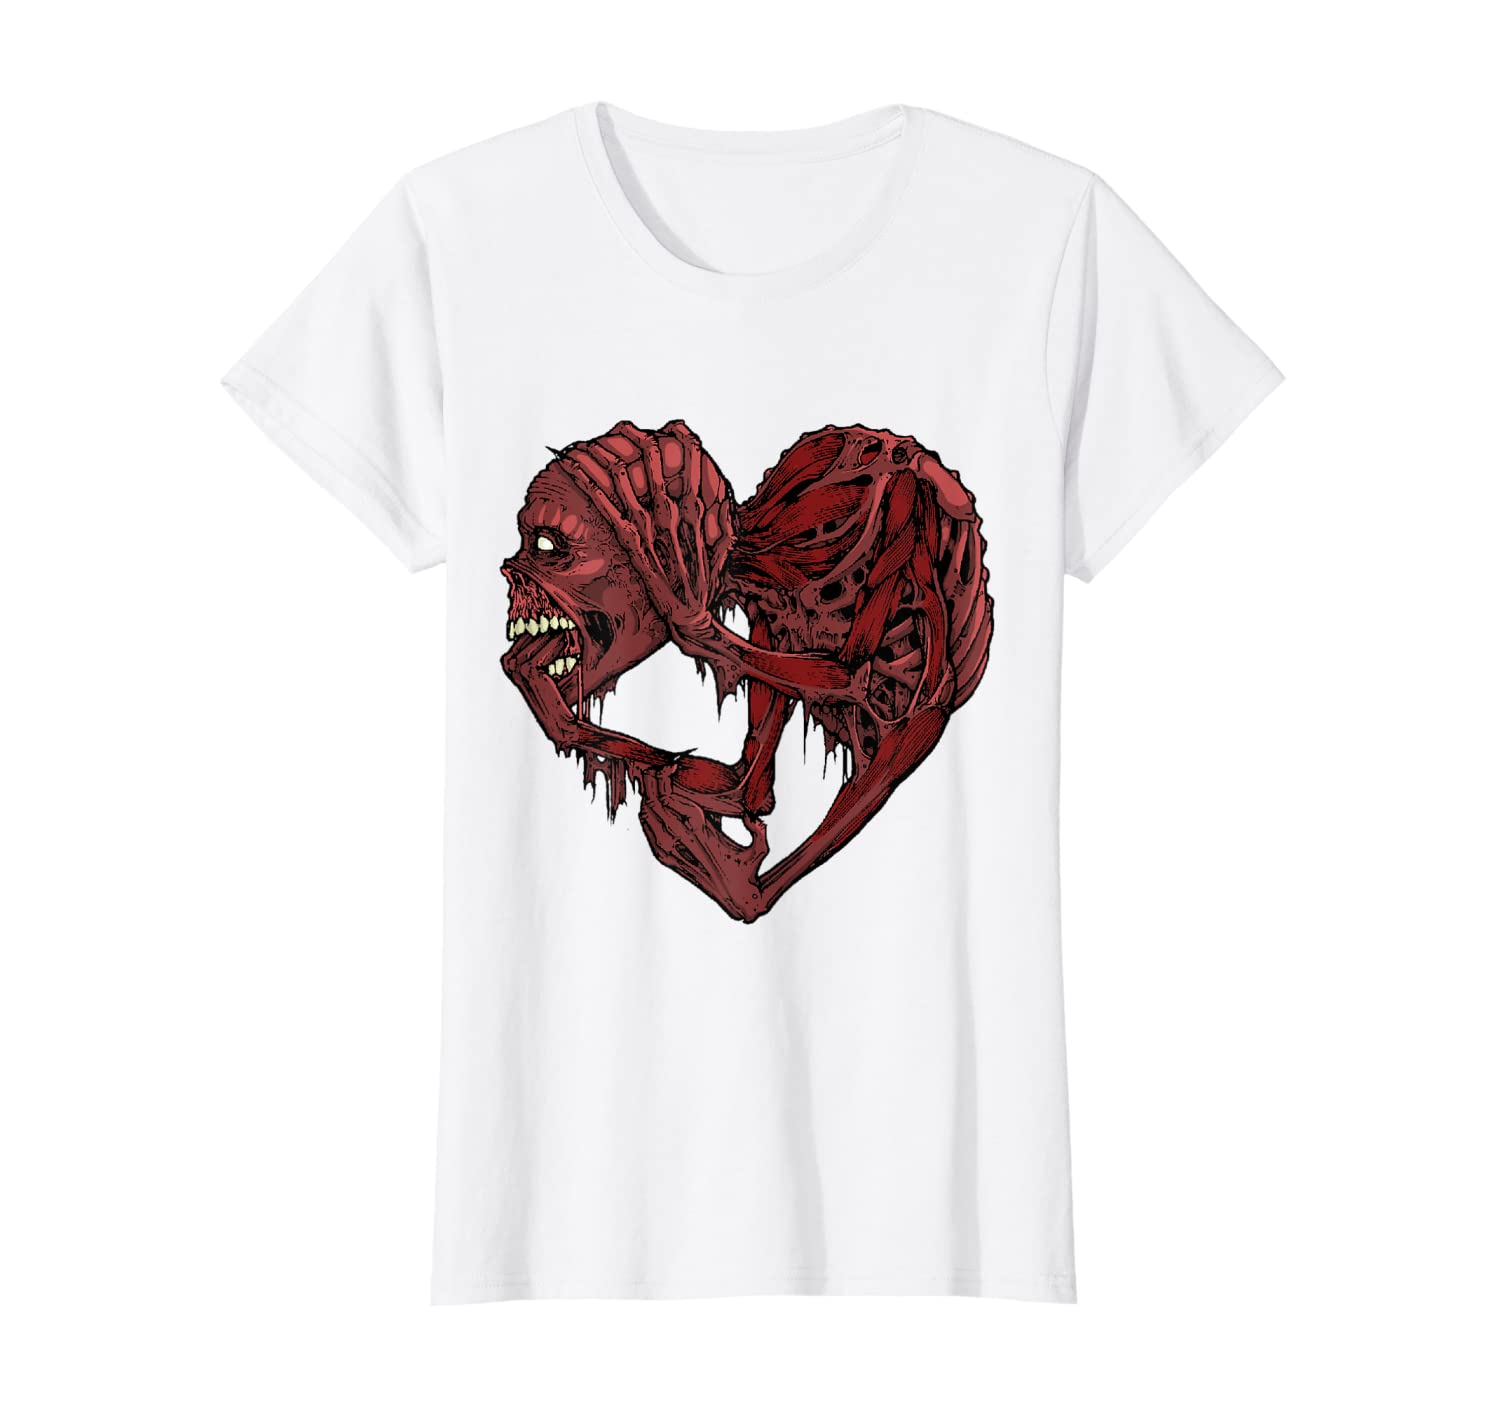 Eat Your Heart Out T-Shirt Unisex Tshirt